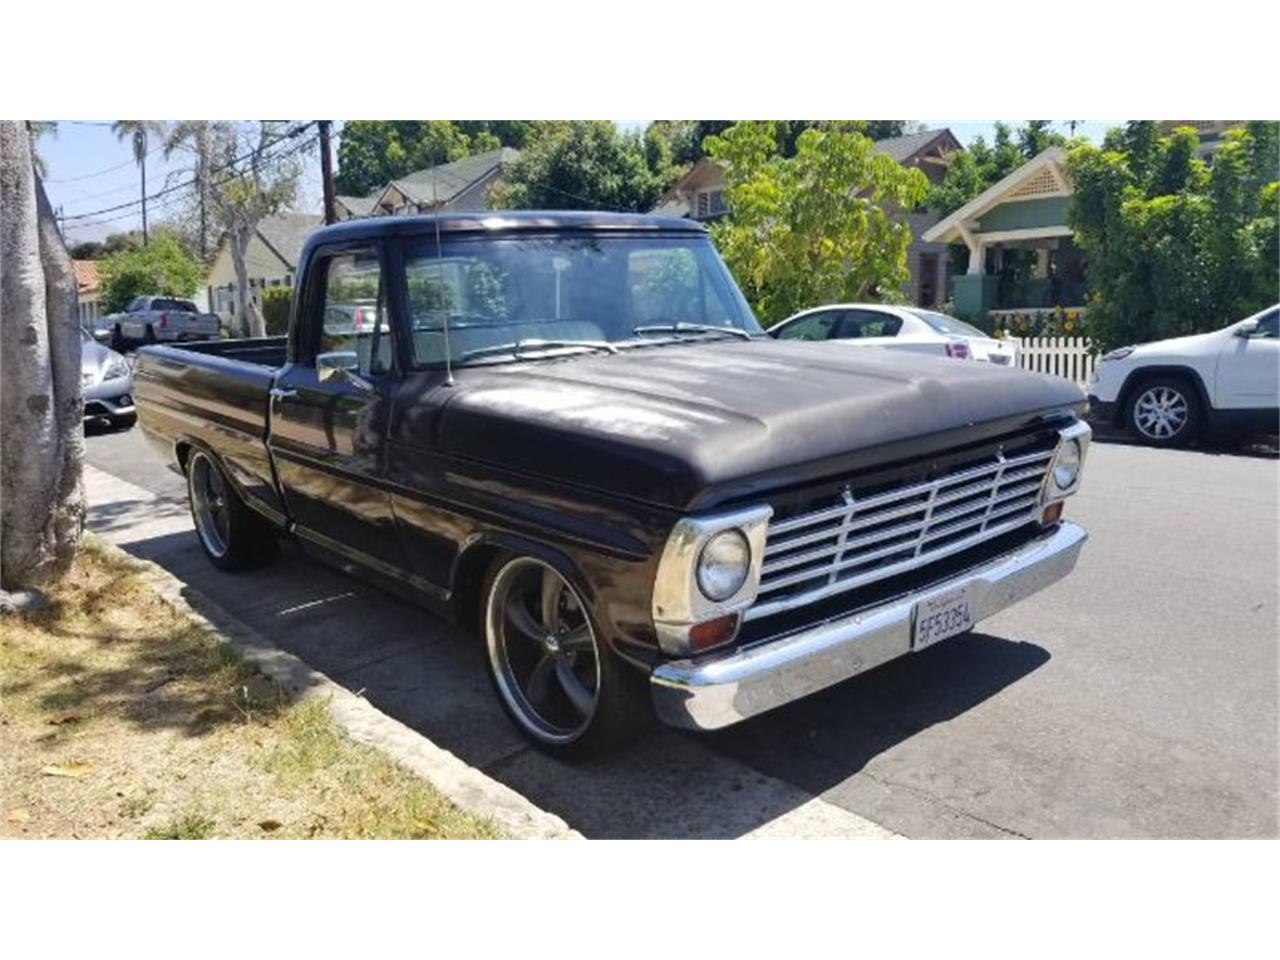 For Sale: 1969 Ford F100 in Cadillac, Michigan